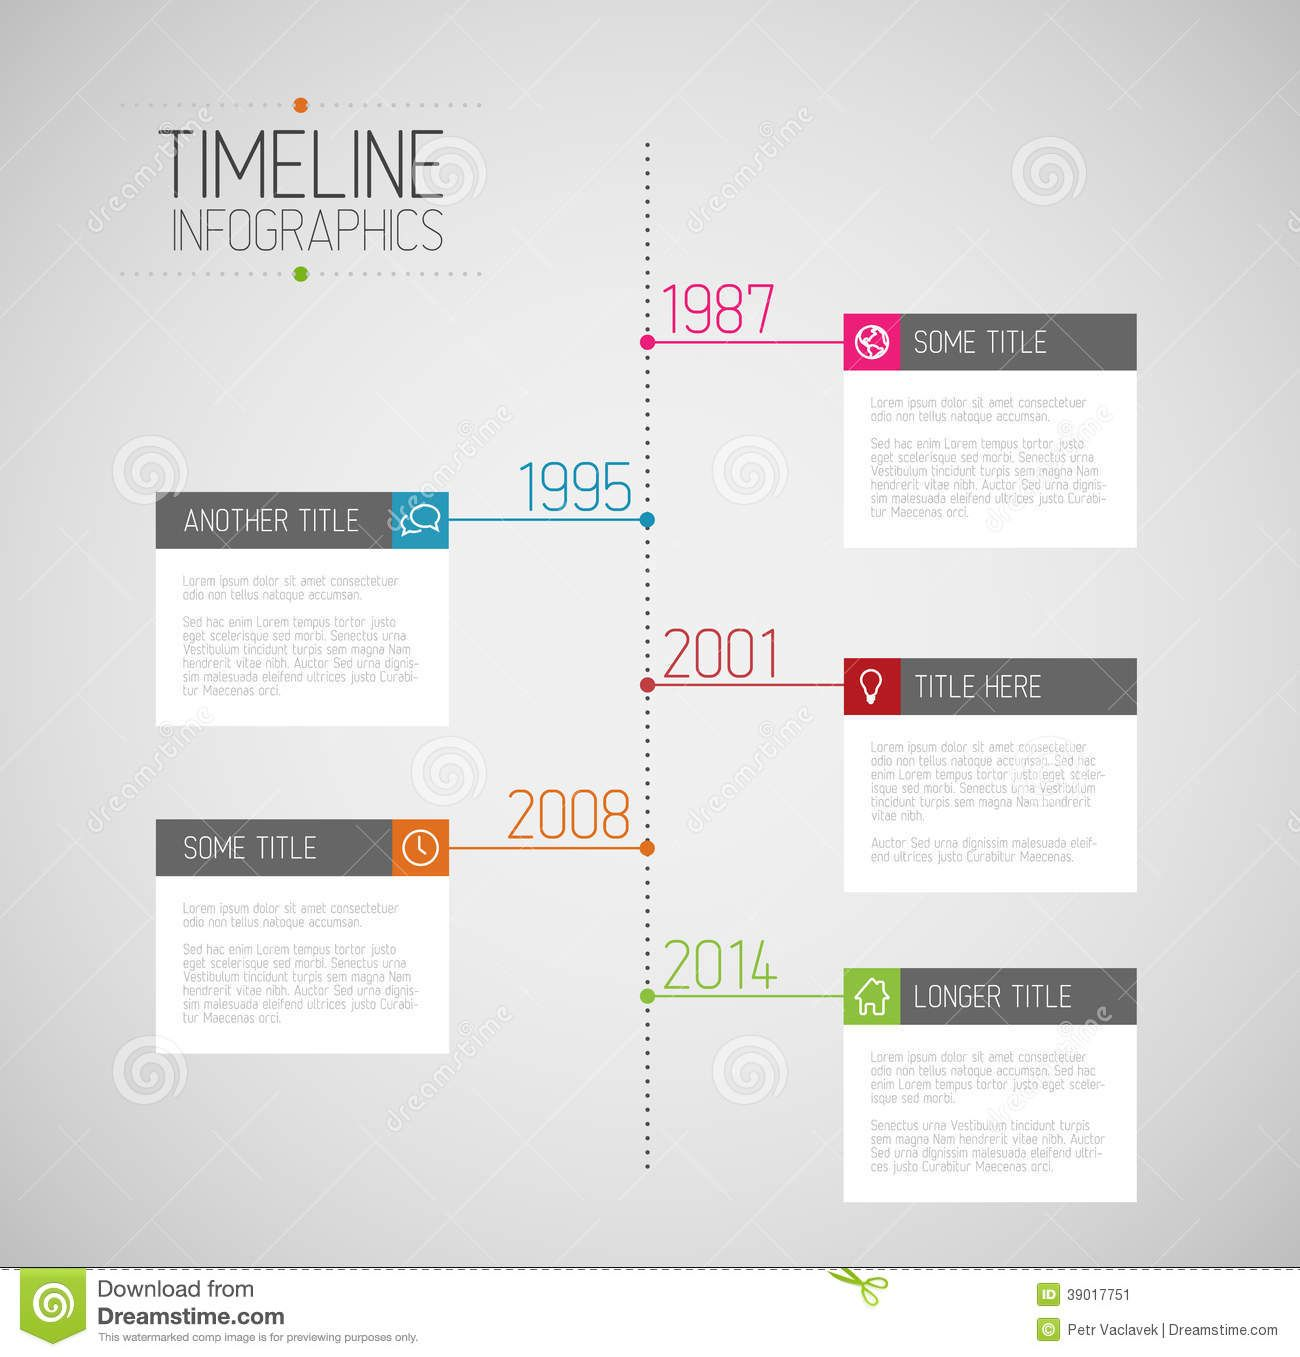 Timeline ideas for timelines pinterest timeline and timeline timeline toneelgroepblik Choice Image